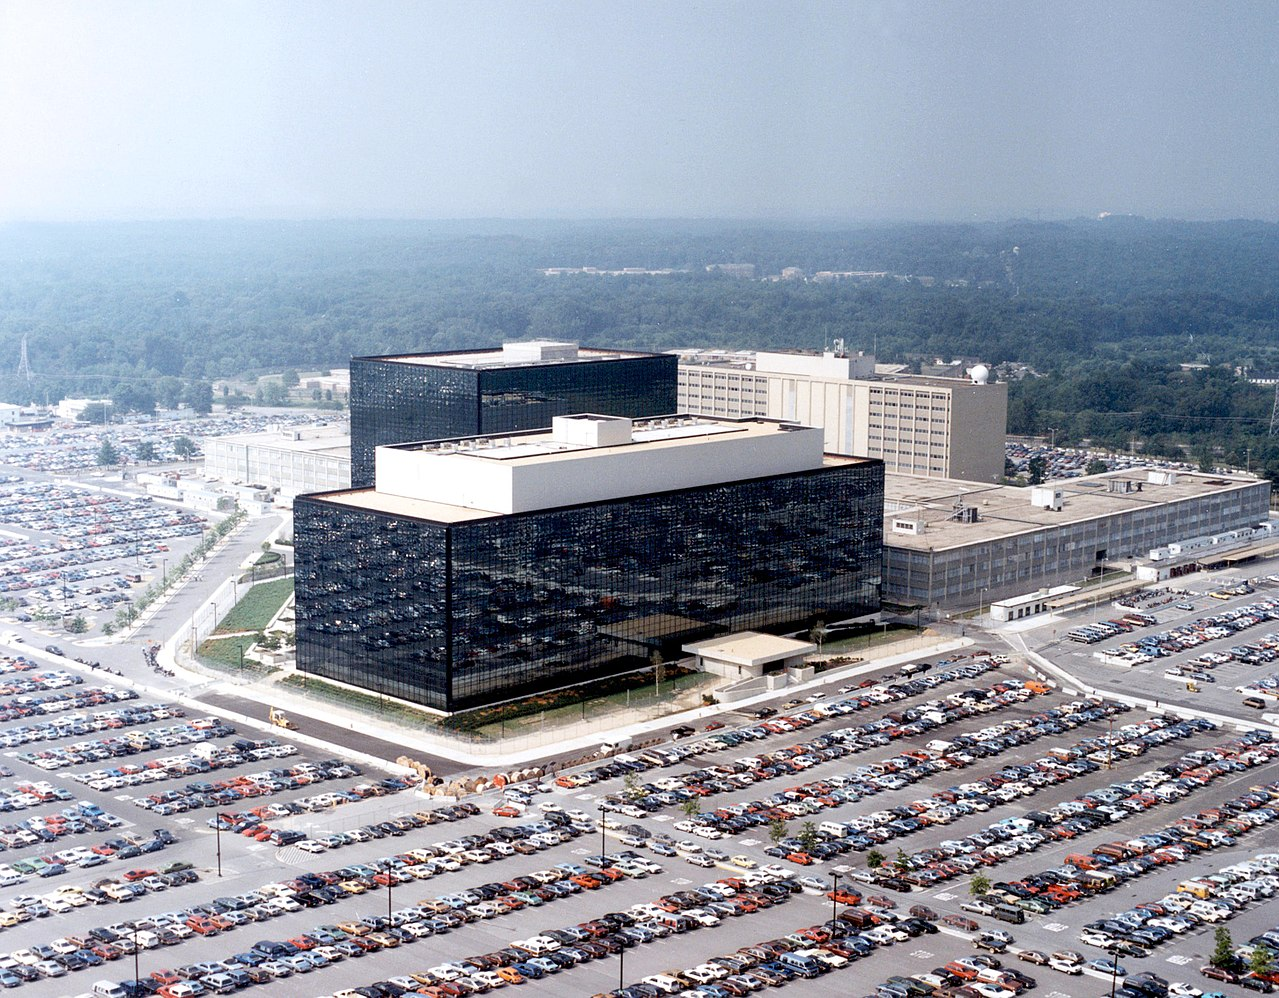 usa_sparatoria_davanti_nsa_un_morto